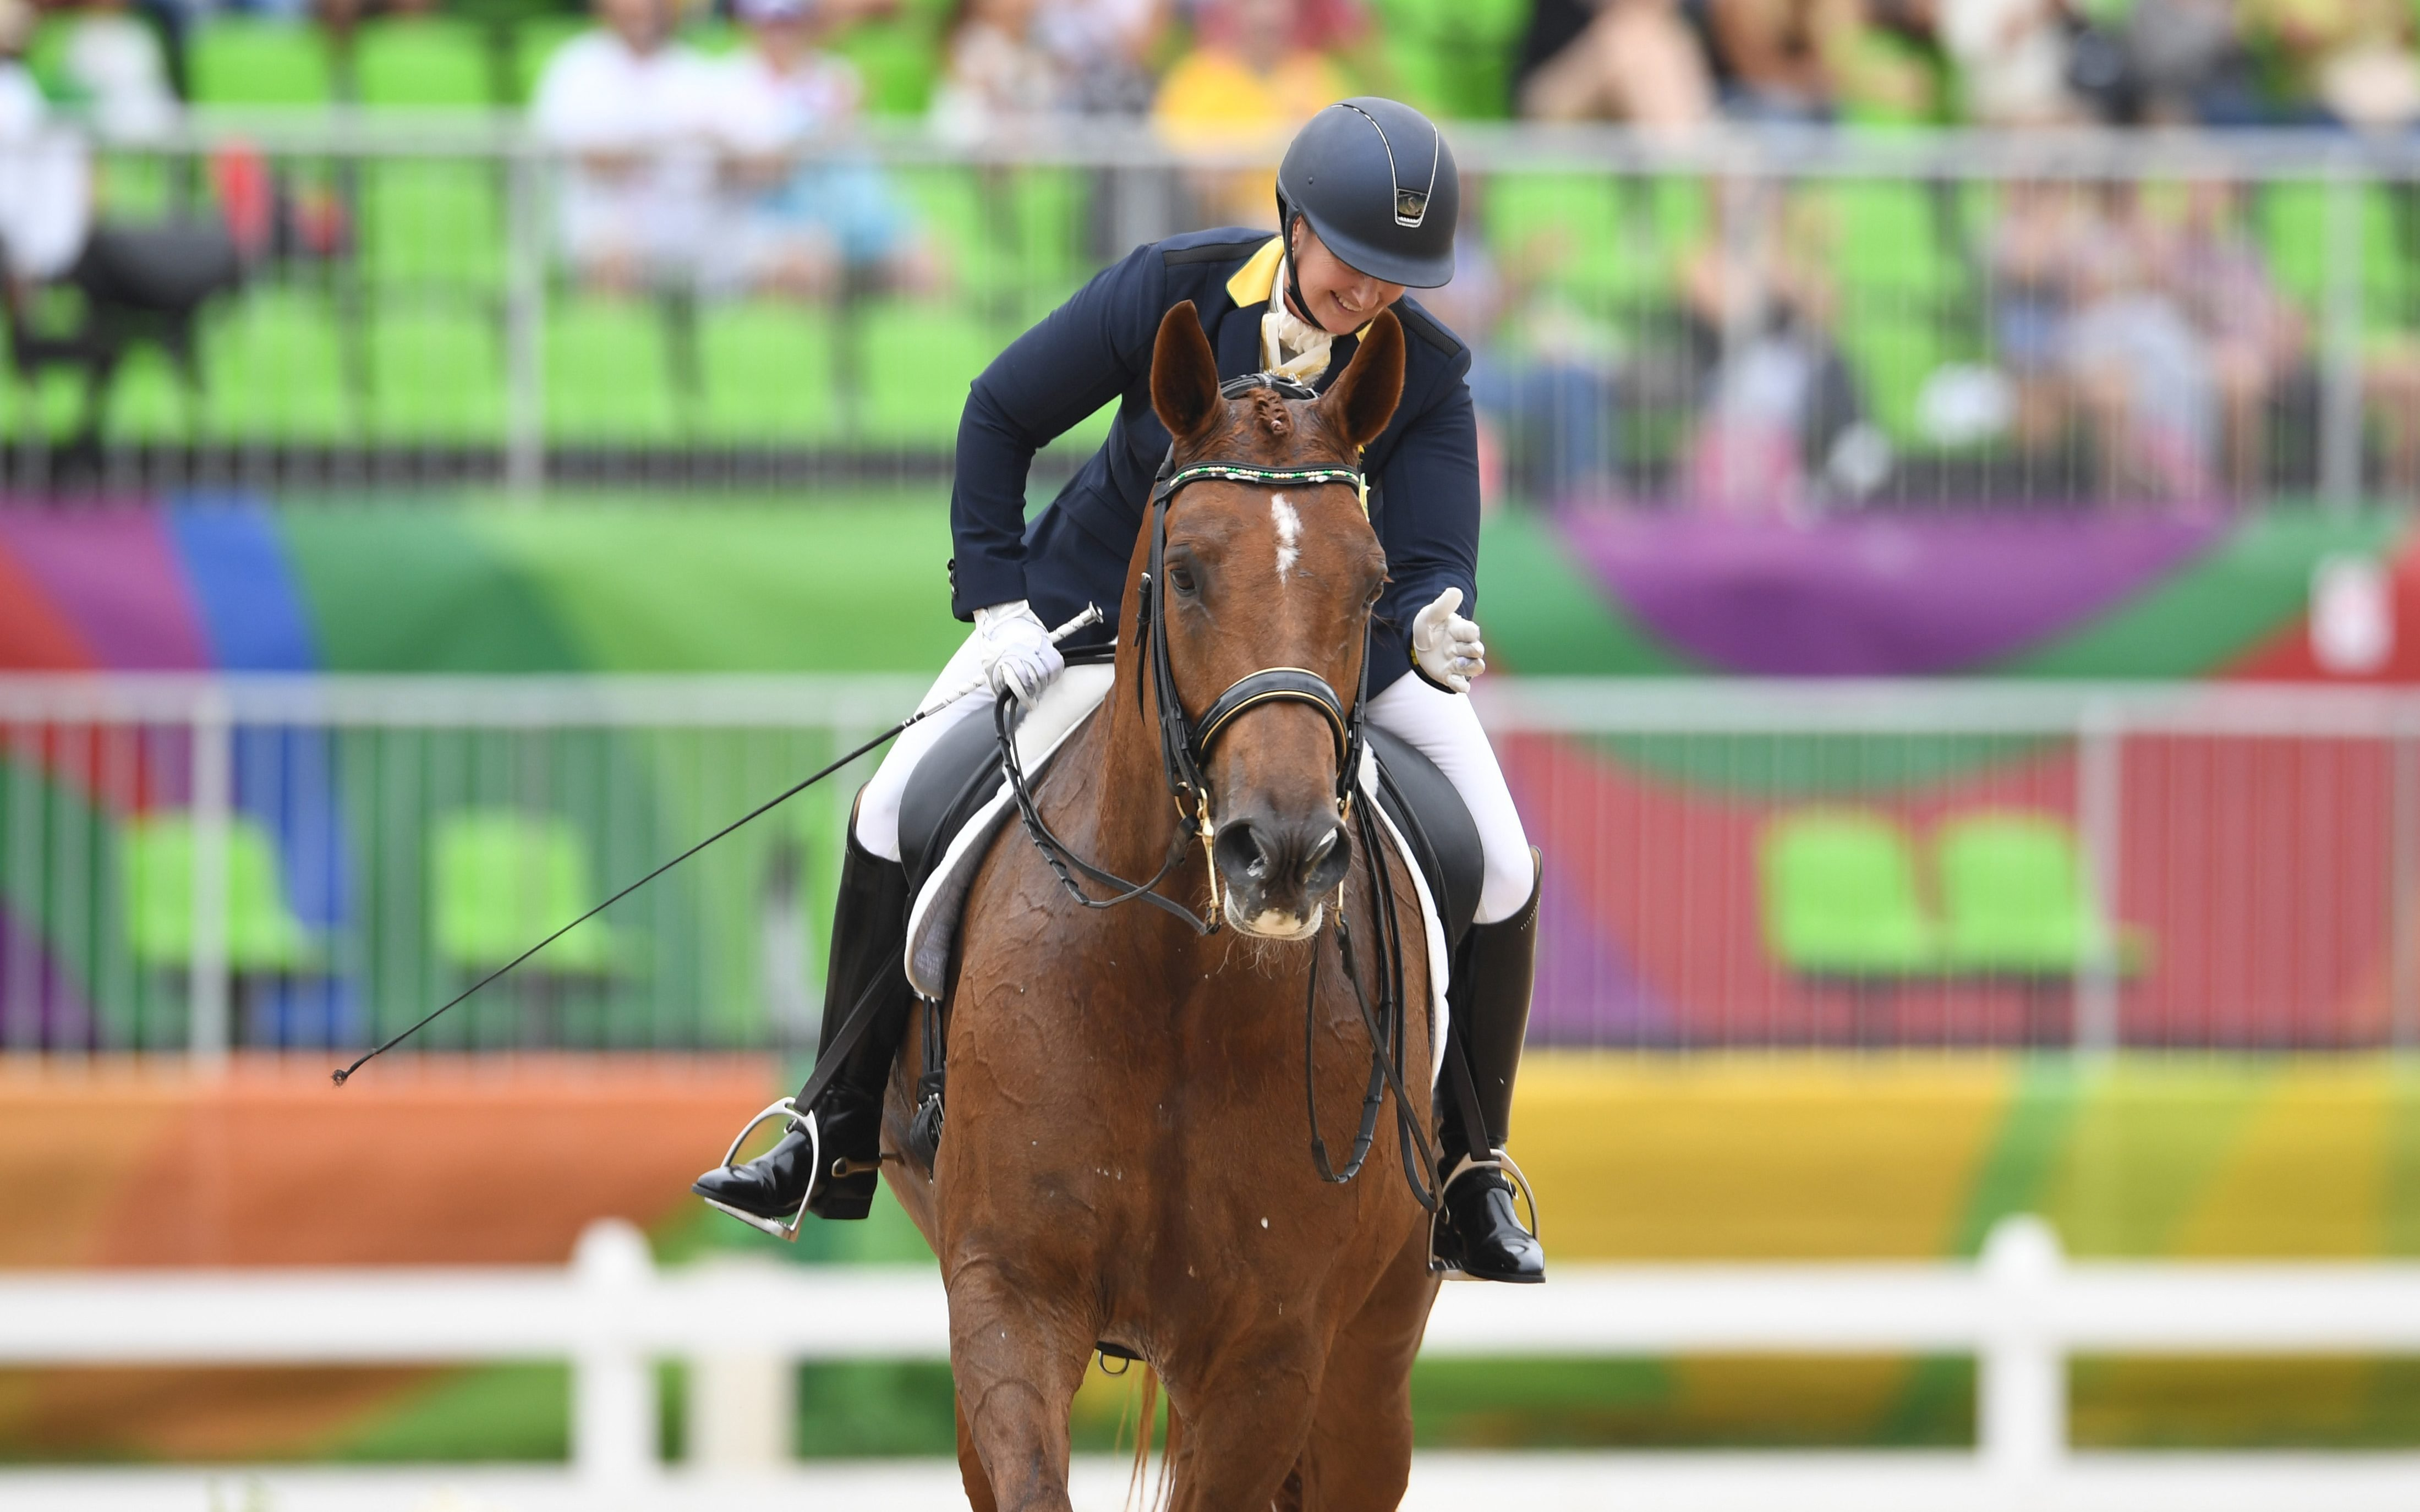 Para-dressage competitors shine on day two